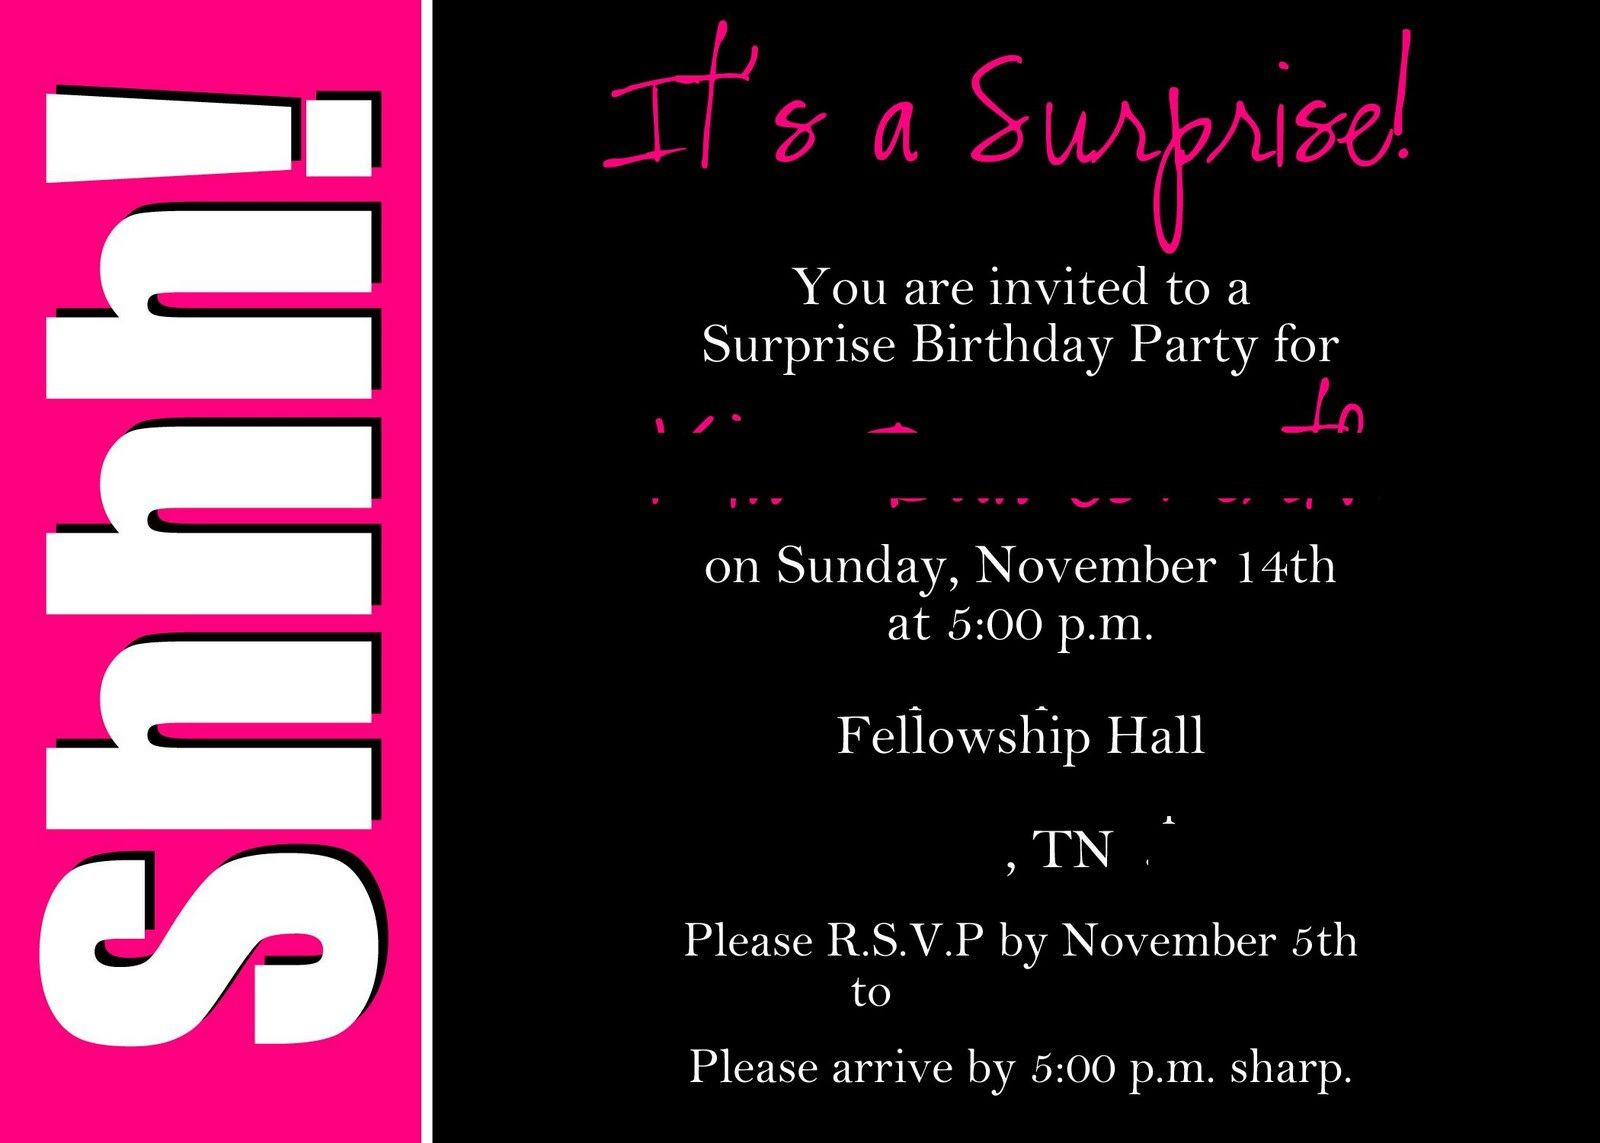 40th surprise birthday party invitations free printable birthday